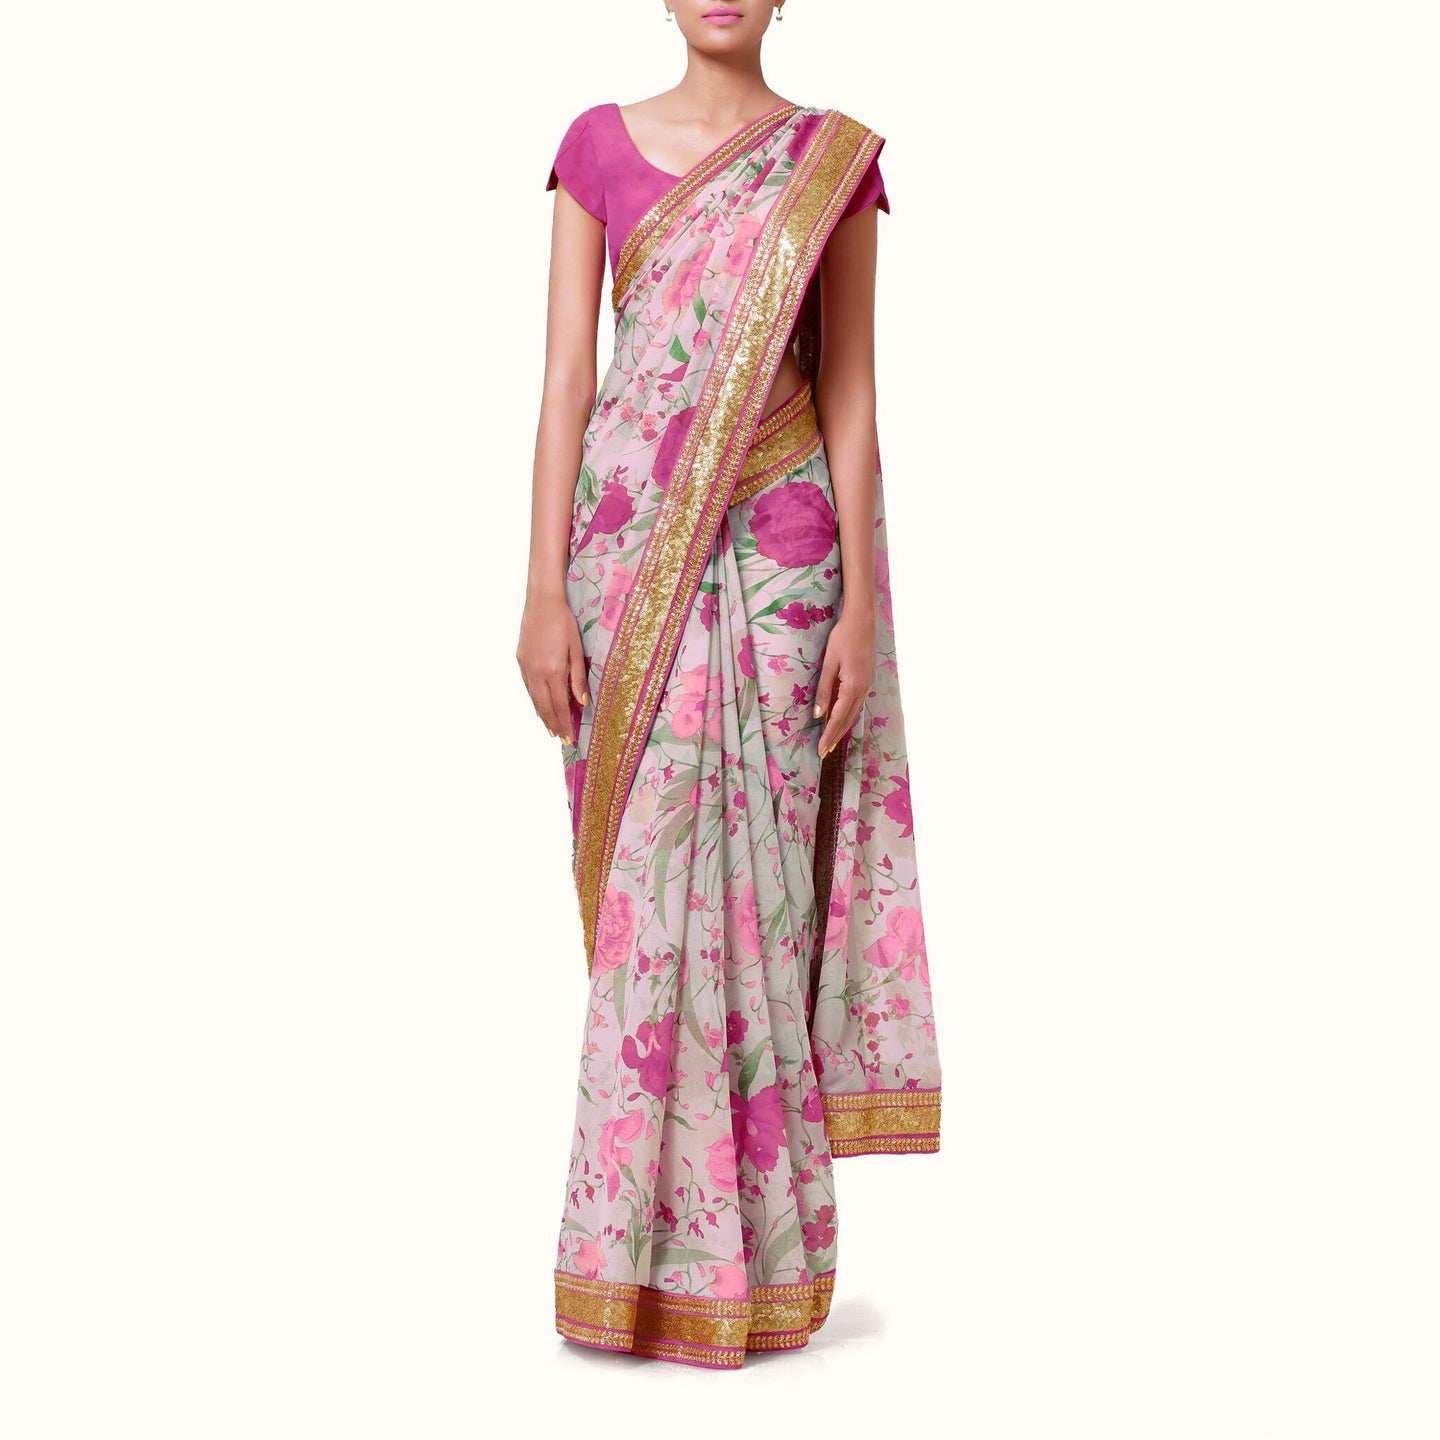 'Secret Garden' Floral Print Silk Chiffon Sari With Blouse Piece